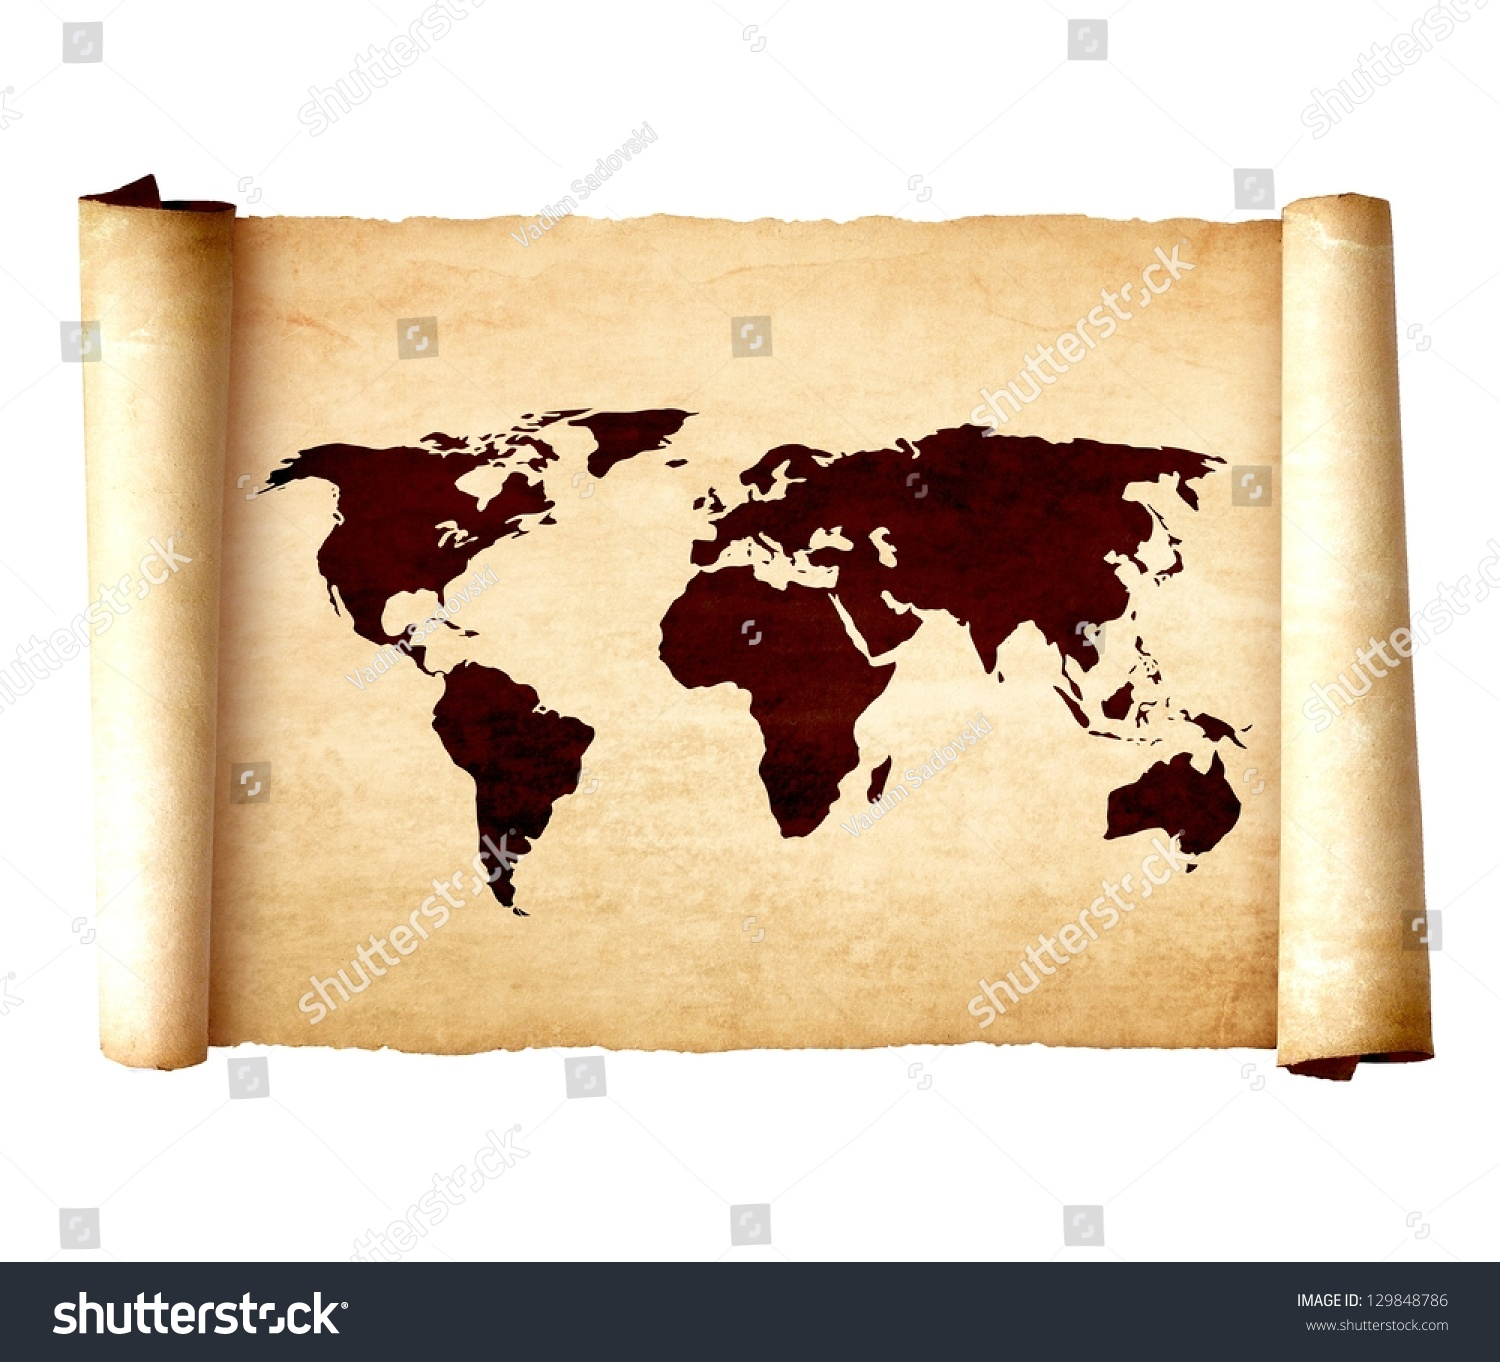 Antique Scroll Map: Old Vintage Scroll World Map Isolated Stock Photo